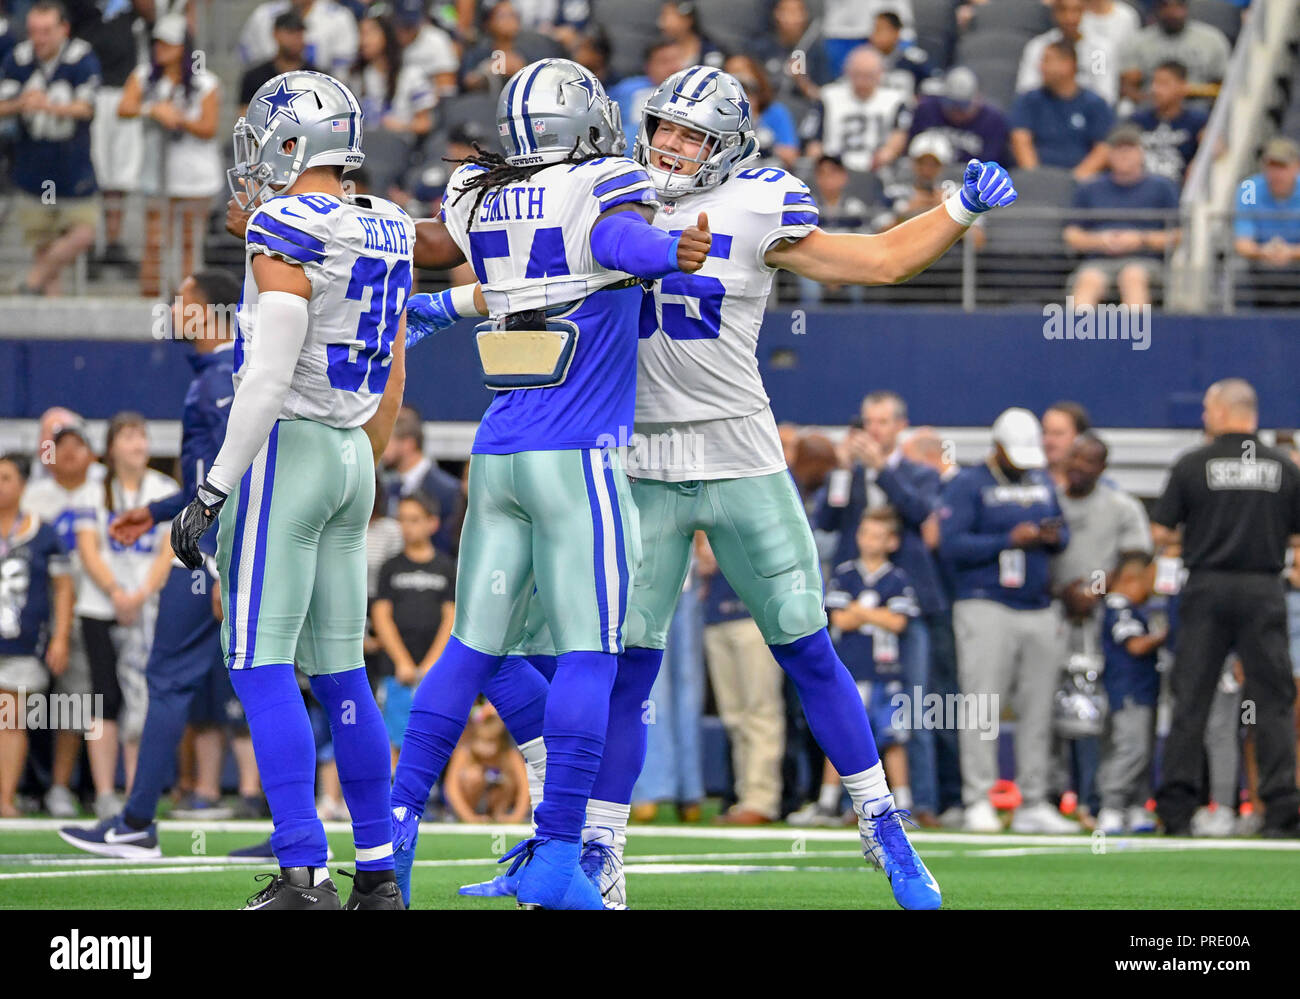 674067f7 September 30, 2018: Dallas Cowboys linebacker Jaylon Smith #54 and Dallas  Cowboys linebacker Leighton Vander Esch #55 chest bump before an NFL  football game ...